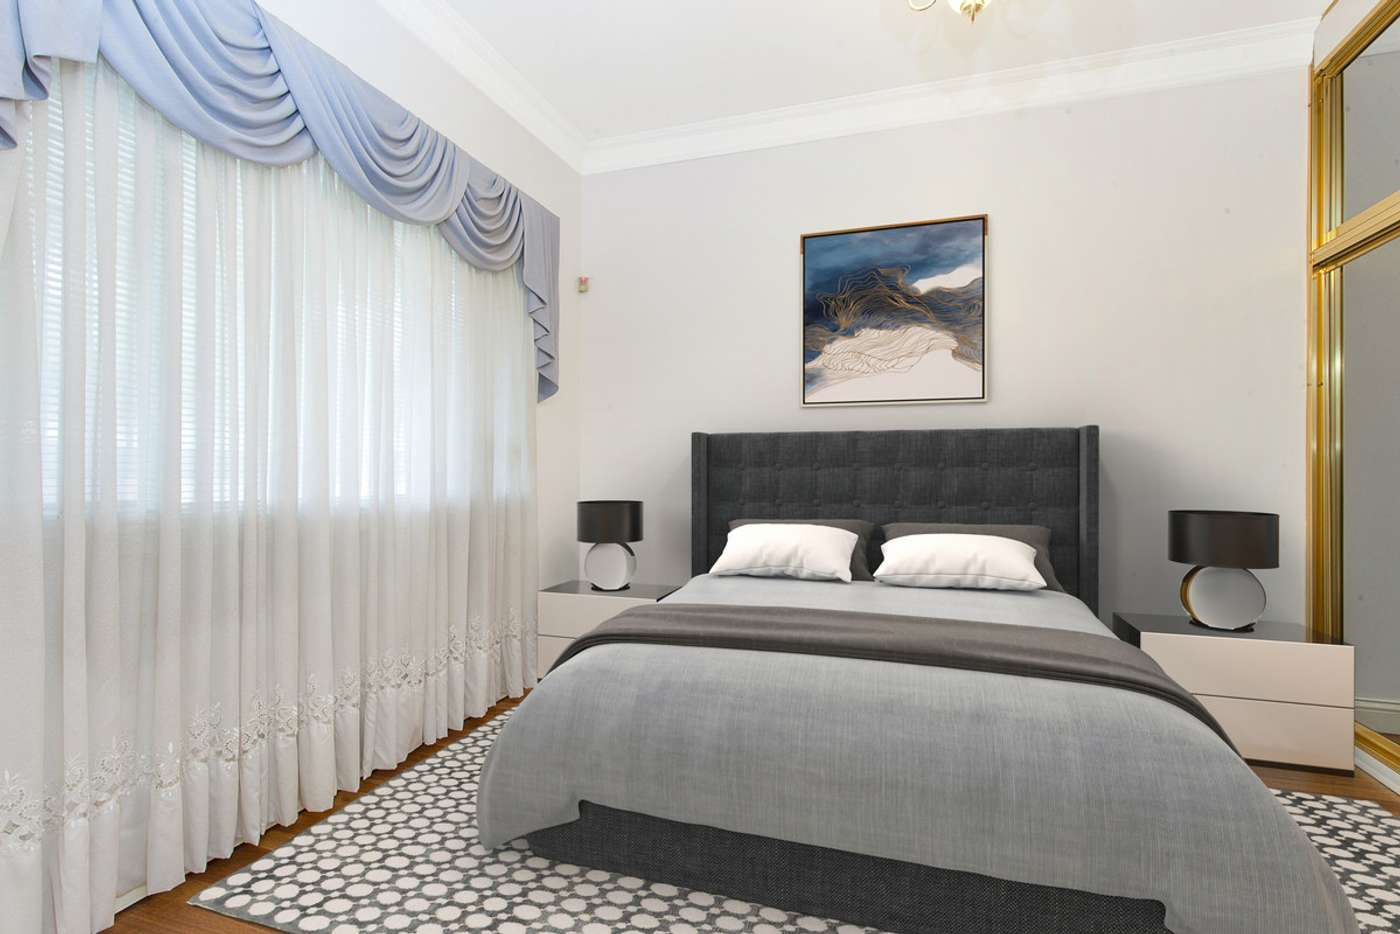 Fifth view of Homely house listing, 7 Cross Street, Croydon NSW 2132